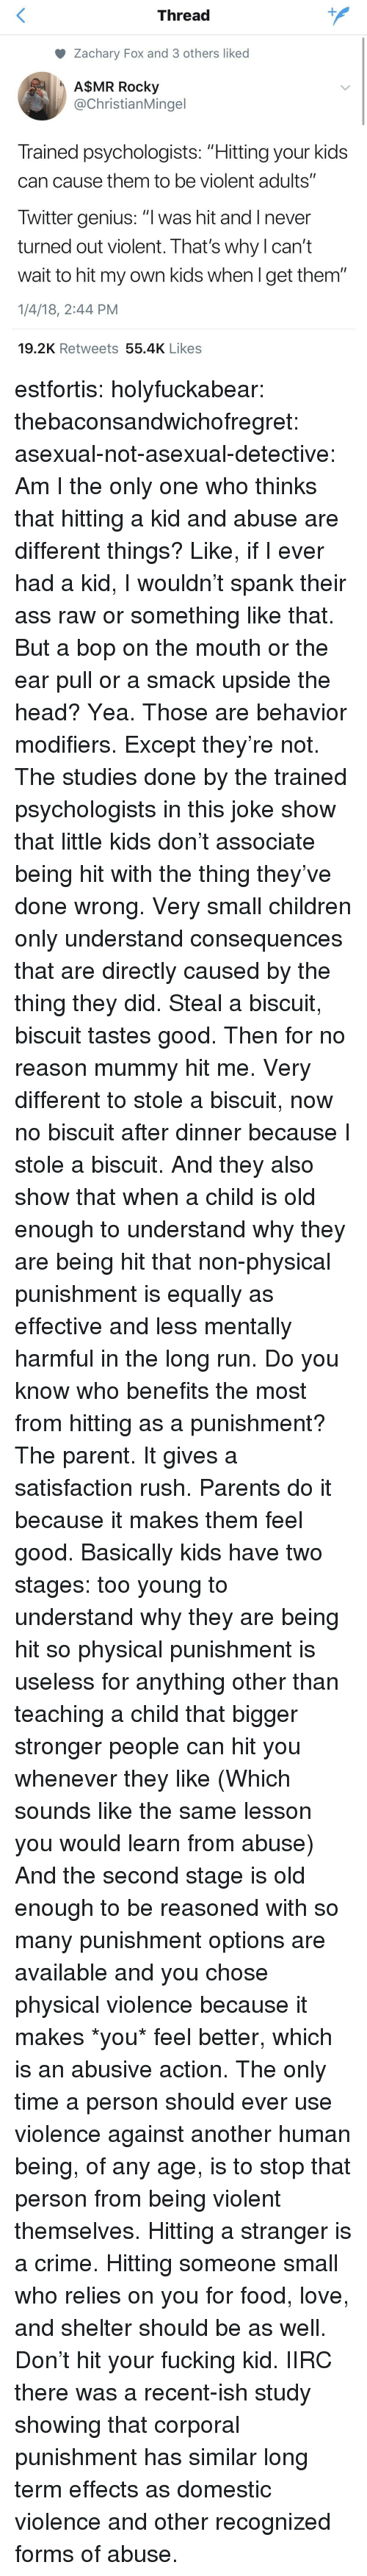 """Asexual: Thread  Zachary Fox and 3 others liked  A$MR Rocky  @ChristianMingel  Trained psychologists: """"Hitting your kids  can cause them to be violent adults""""  Twitter genius: """"l was hit and I never  turned out violent. That's why l can't  wait to hit my own kids when l get them""""  1/4/18, 2:44 PM  19.2K Retweets 55.4K Likes estfortis: holyfuckabear:  thebaconsandwichofregret:  asexual-not-asexual-detective:  Am I the only one who thinks that hitting a kid and abuse are different things? Like, if I ever had a kid, I wouldn't spank their ass raw or something like that. But a bop on the mouth or the ear pull or a smack upside the head? Yea. Those are behavior modifiers.   Except they're not.  The studies done by the trained psychologists in this joke show that little kids don't associate being hit with the thing they've done wrong. Very small children only understand consequences that are directly caused by the thing they did. Steal a biscuit, biscuit tastes good. Then for no reason mummy hit me. Very different to stole a biscuit, now no biscuit after dinner because I stole a biscuit. And they also show that when a child is old enough to understand why they are being hit that non-physical punishment is equally as effective and less mentally harmful in the long run.  Do you know who benefits the most from hitting as a punishment? The parent. It gives a satisfaction rush. Parents do it because it makes them feel good.  Basically kids have two stages: too young to understand why they are being hit so physical punishment is useless for anything other than teaching a child that bigger stronger people can hit you whenever they like (Which sounds like the same lesson you would learn from abuse) And the second stage is old enough to be reasoned with so many punishment options are available and you chose physical violence because it makes *you* feel better, which is an abusive action.  The only time a person should ever use violence against another human being, of any age, is t"""